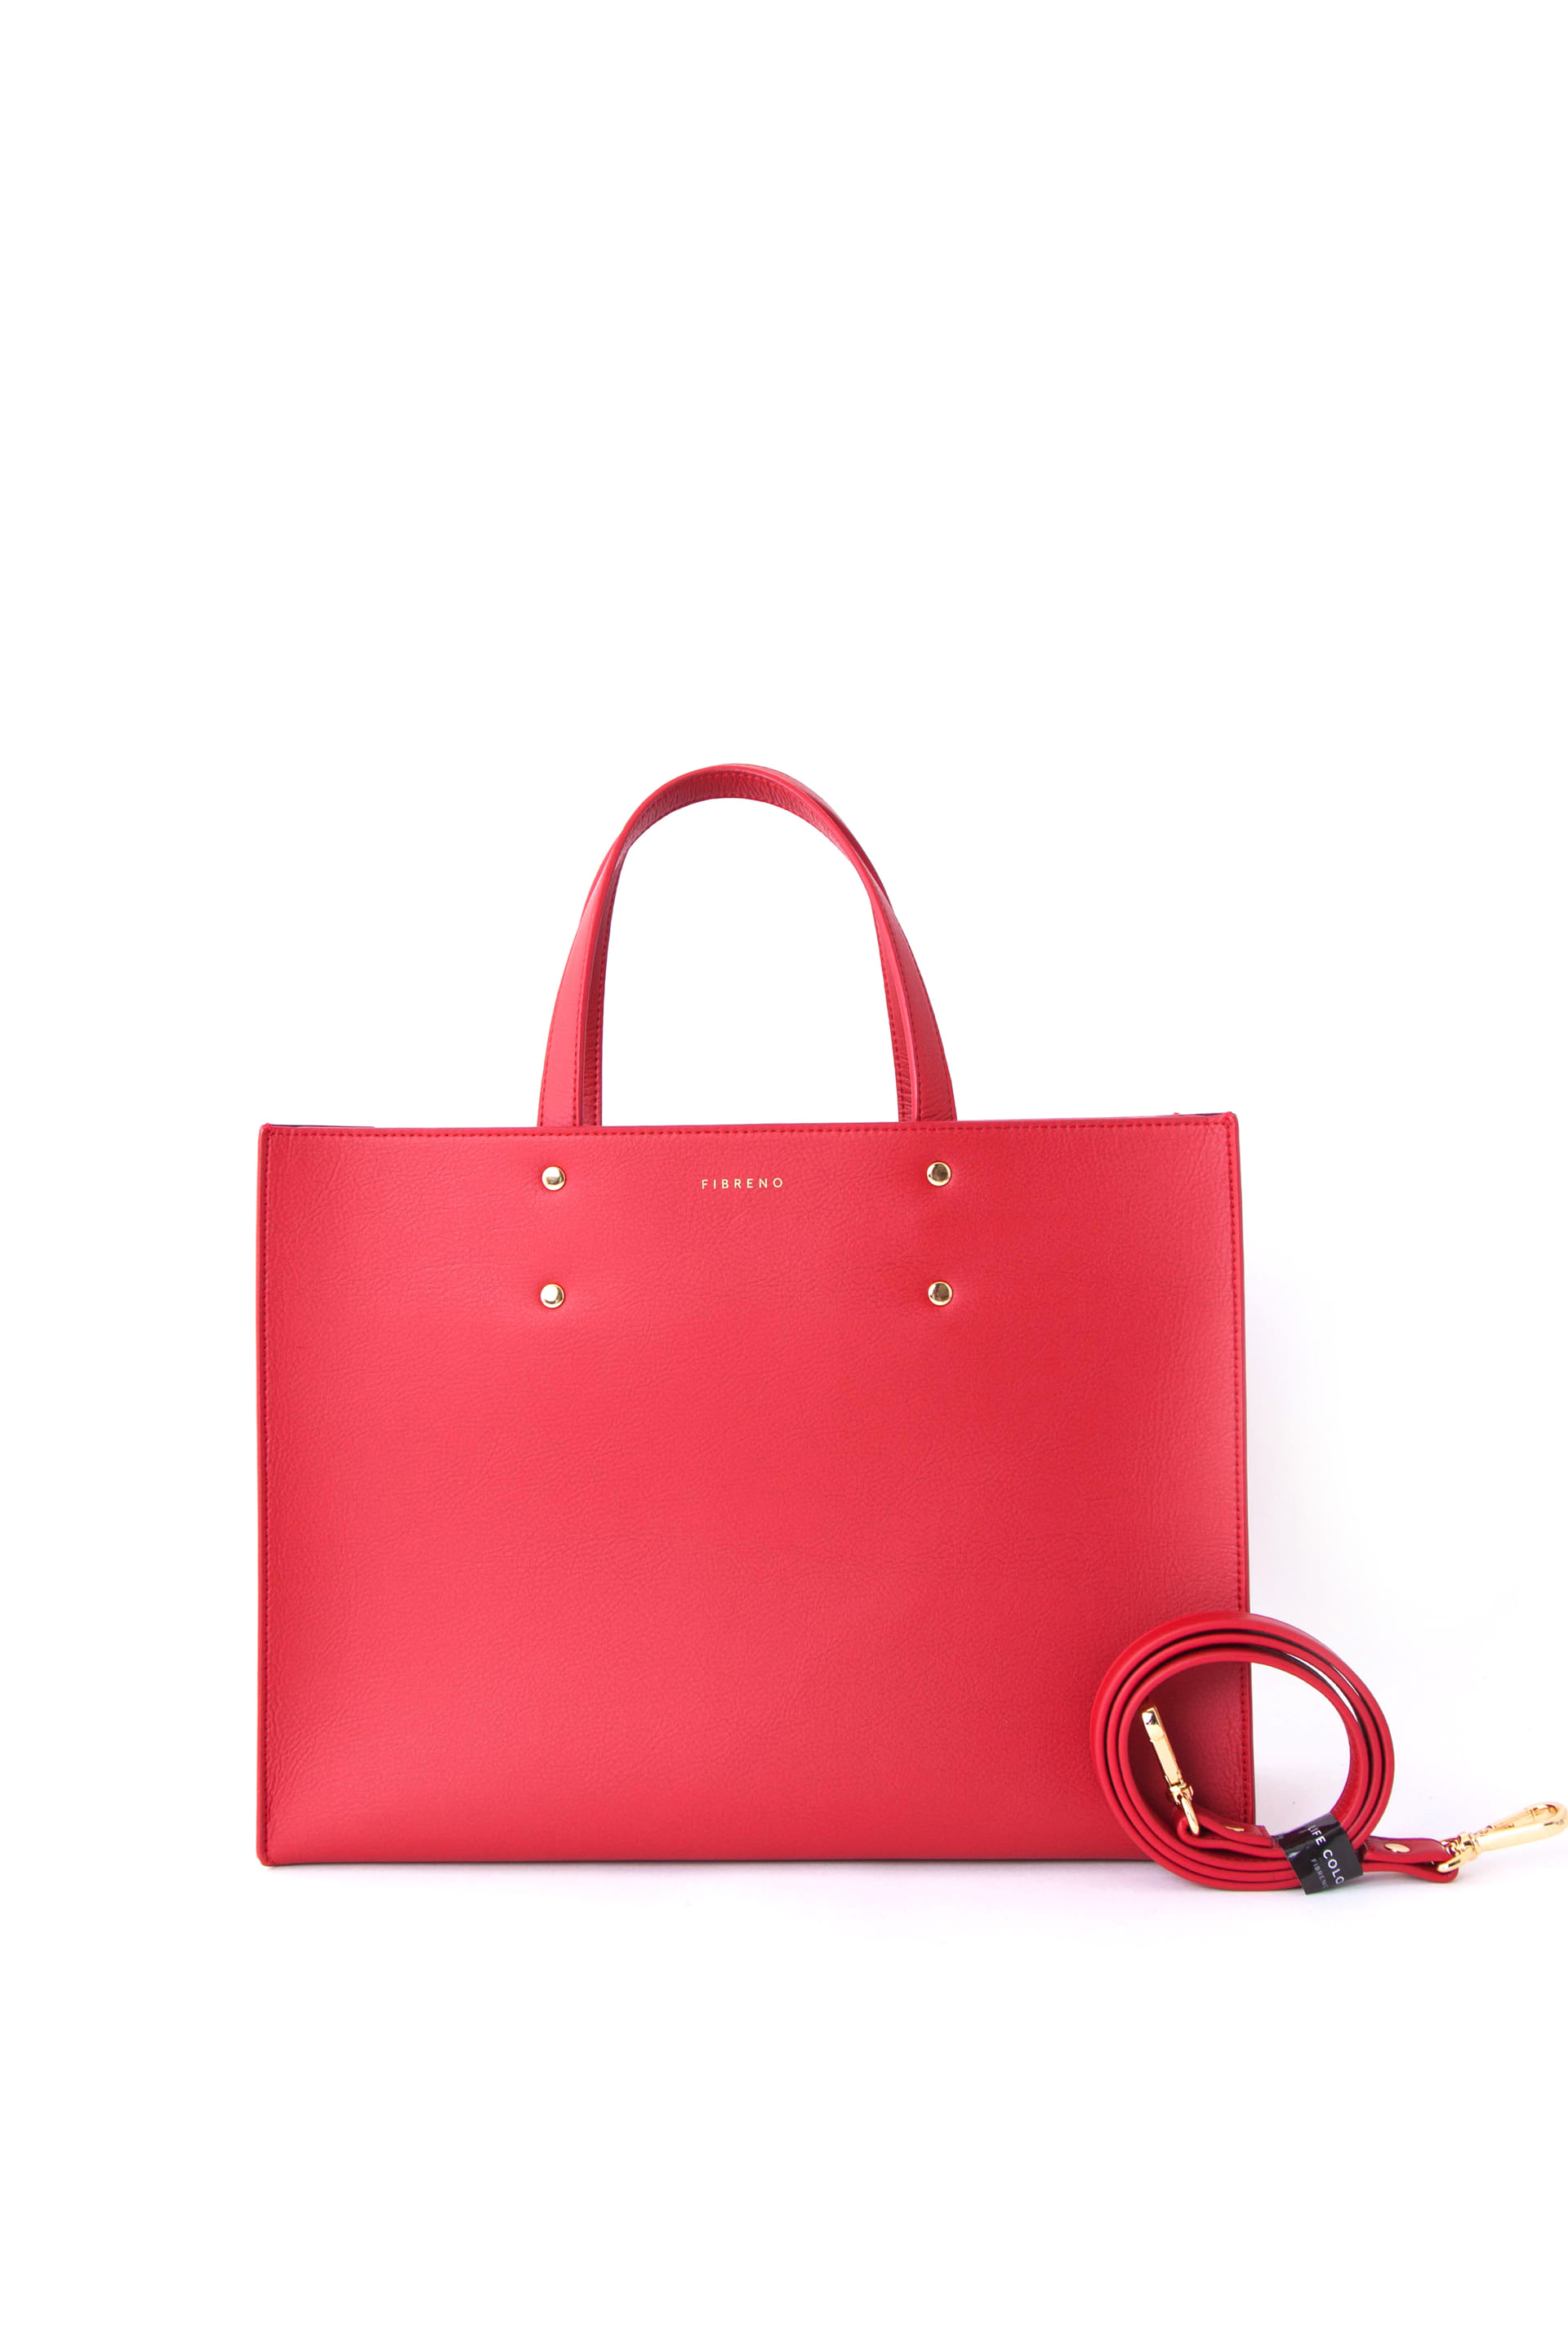 CAREER BAG 06 Red